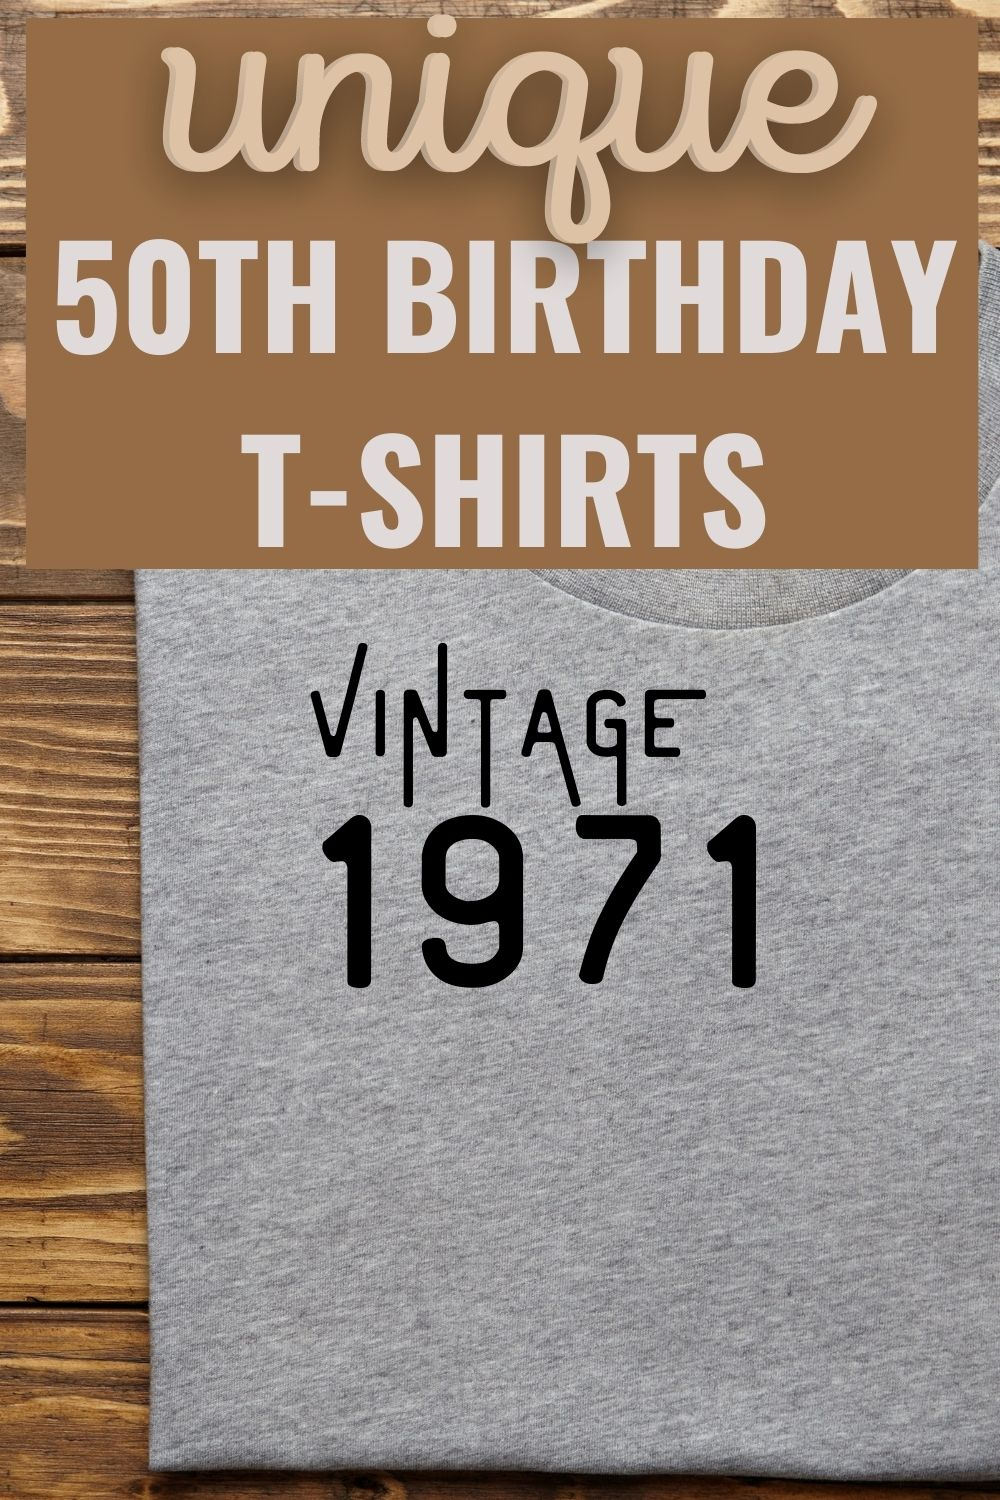 Unique 50th birtday t-shirts